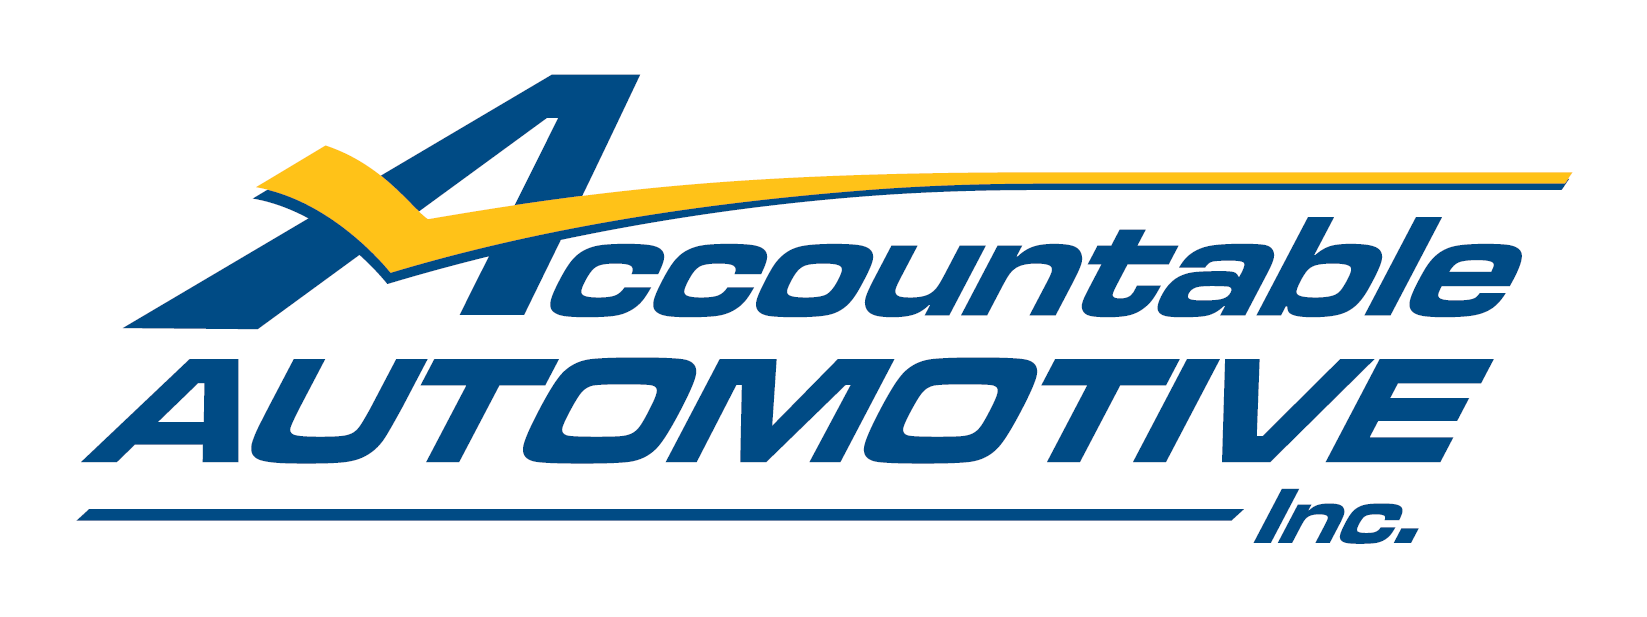 Accountable Automotive Incorporated